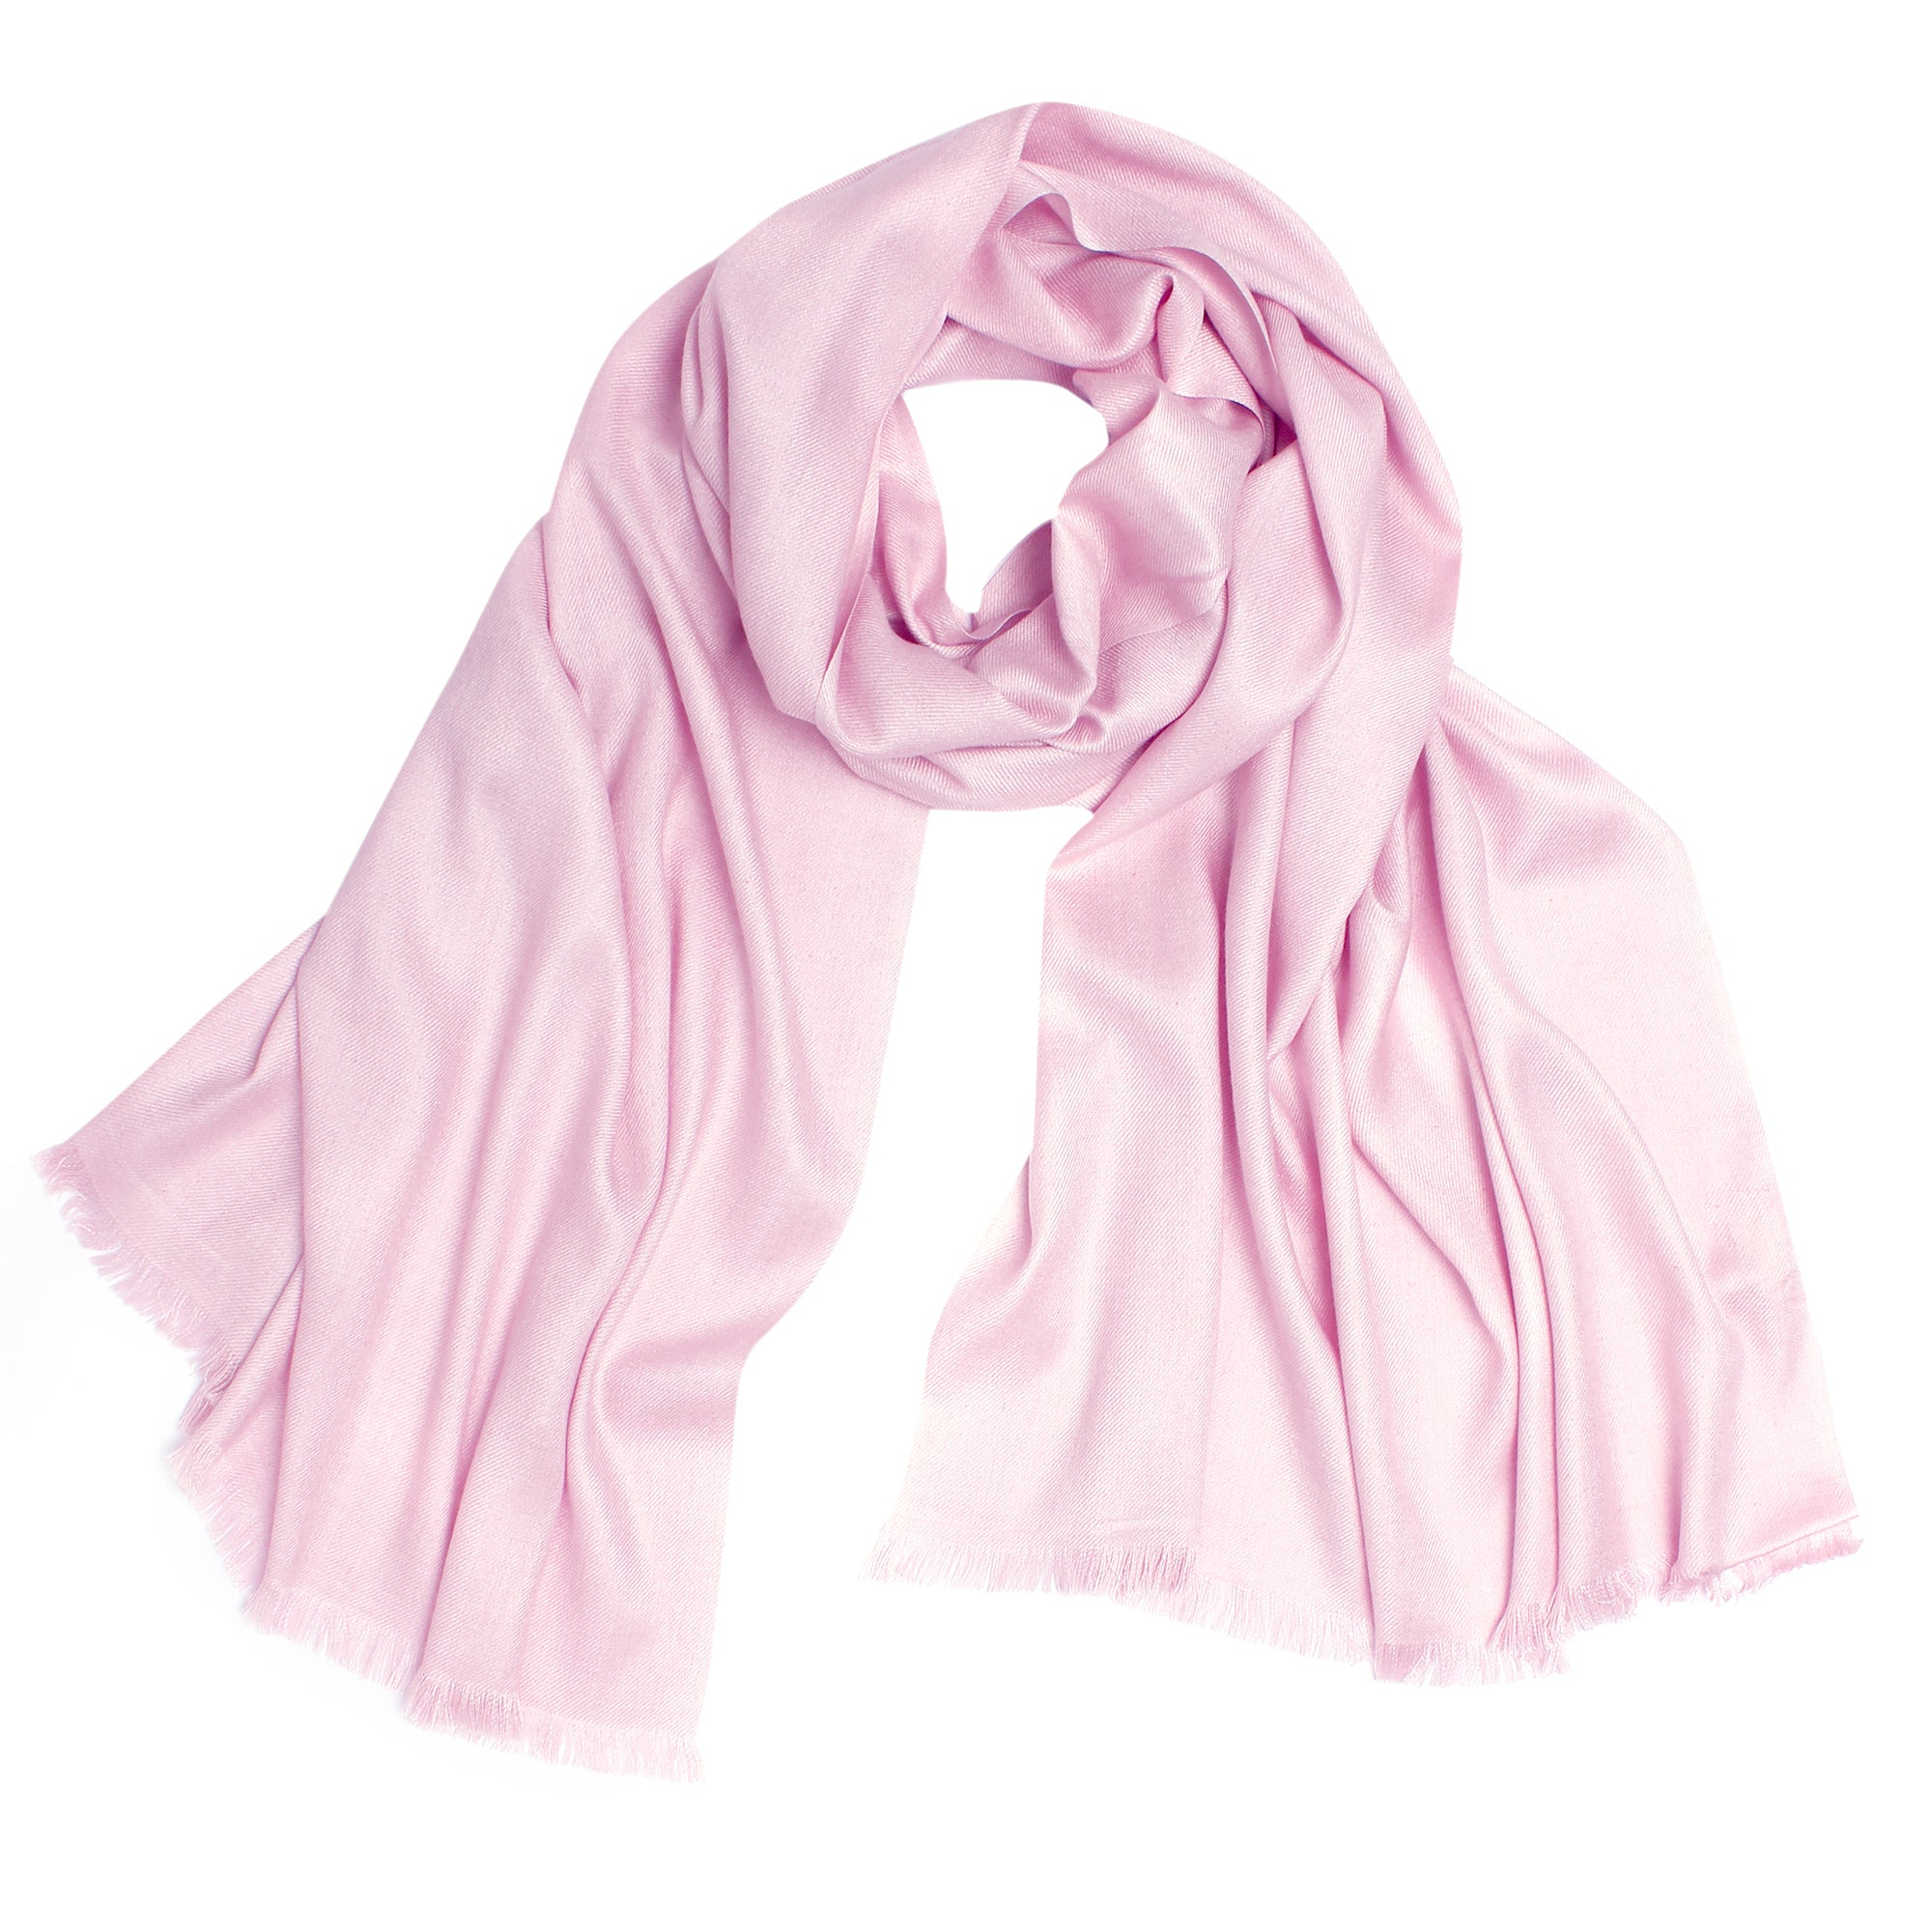 Pashma Pink Stole crafted in Modal Silk Wool Cashmere